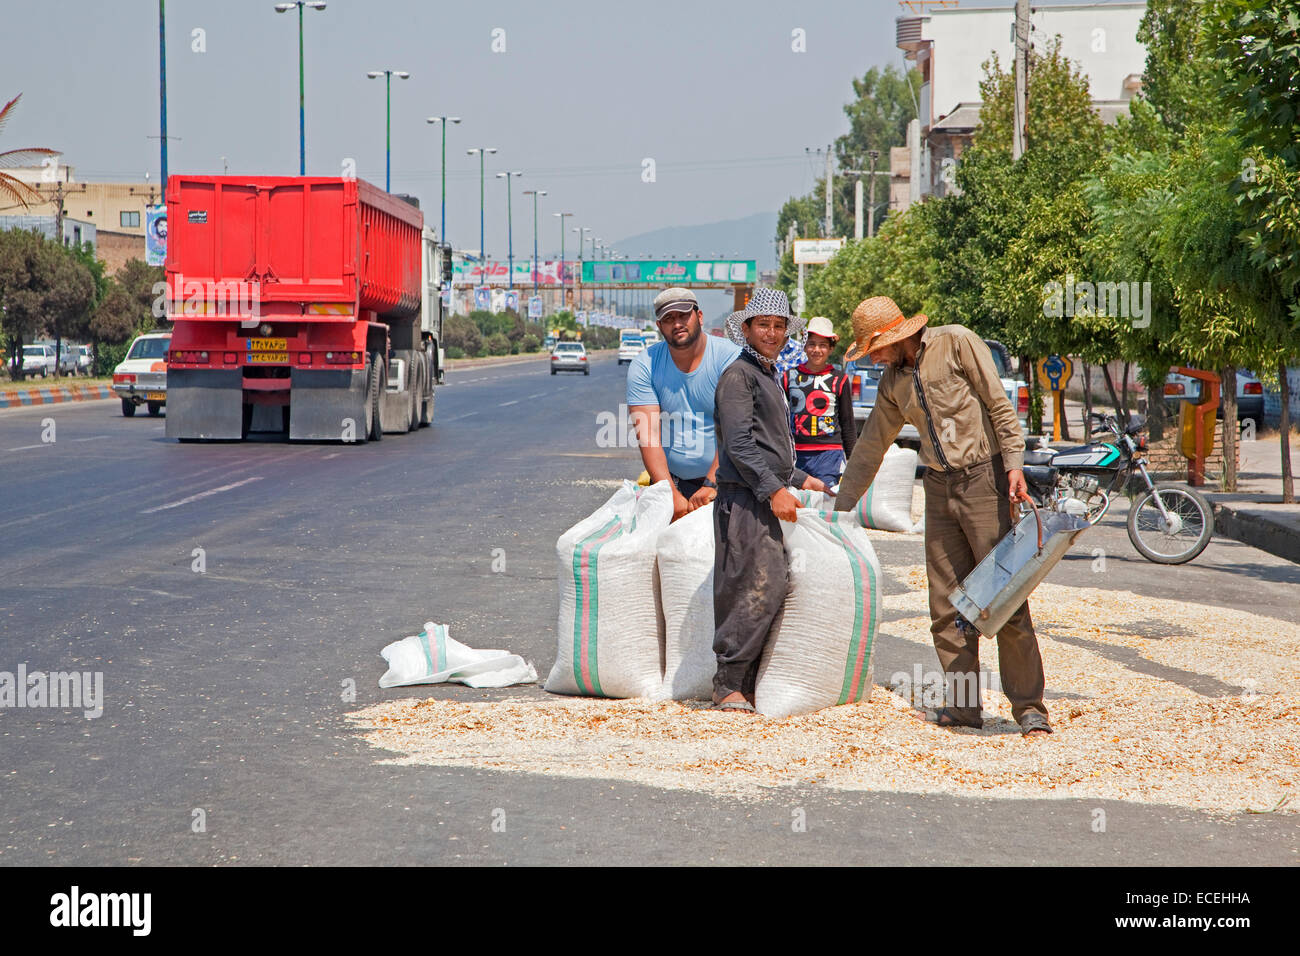 Iranian workers drying seeds on the street in the city Azadshahr, Golestan Province, Iran - Stock Image